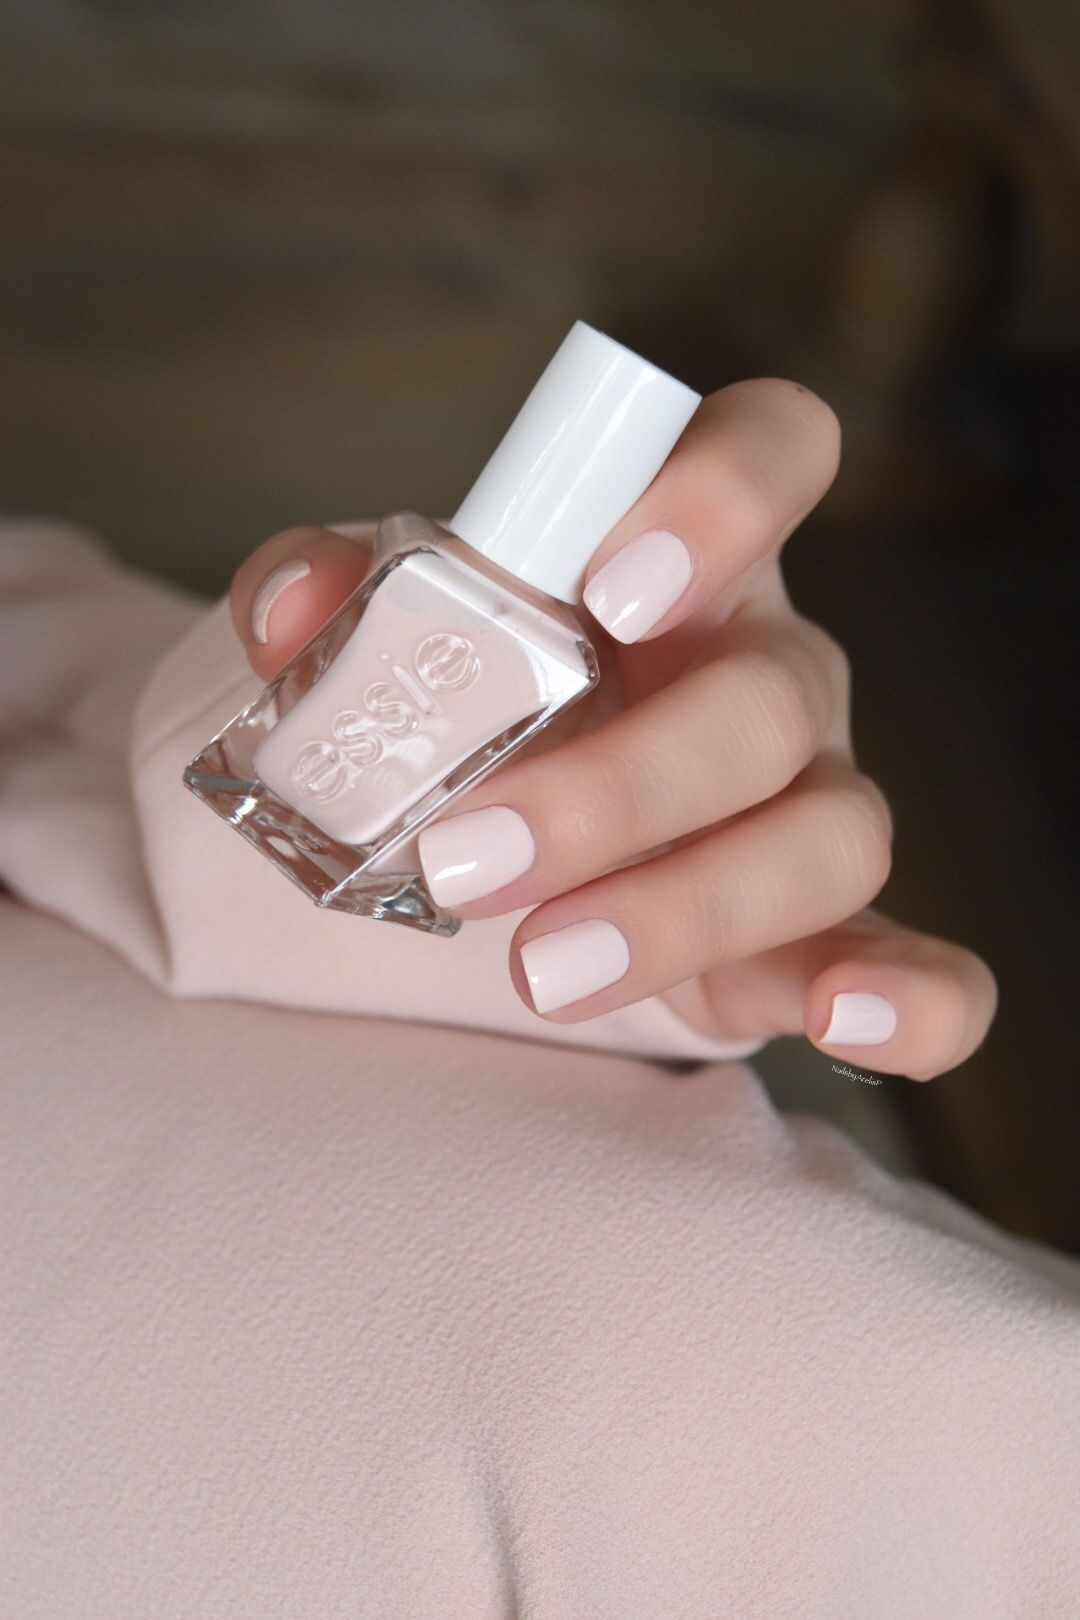 Essie Topless Amp Barefoot Nail Polish Review Amp Swatches